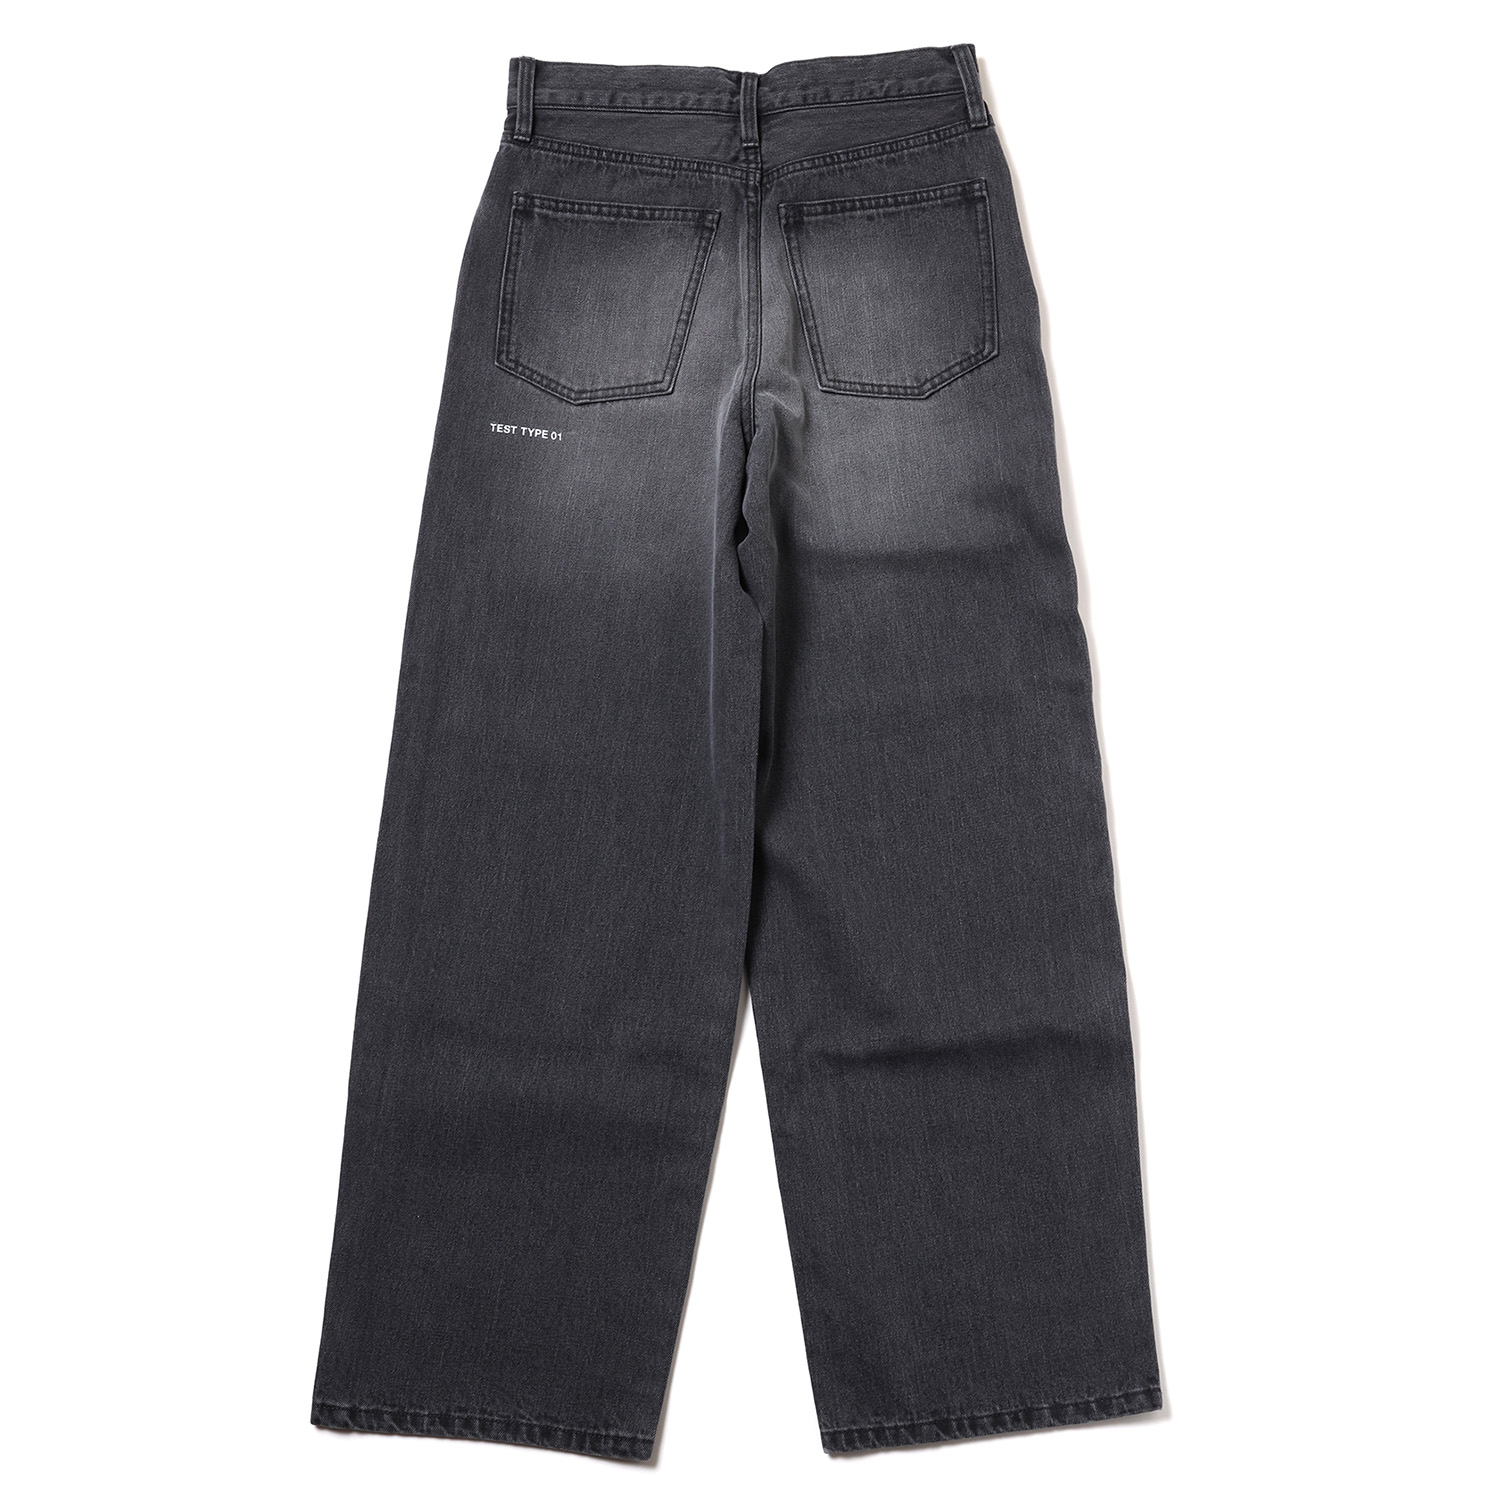 YAMIYO WIDE DENIM (GRAY)